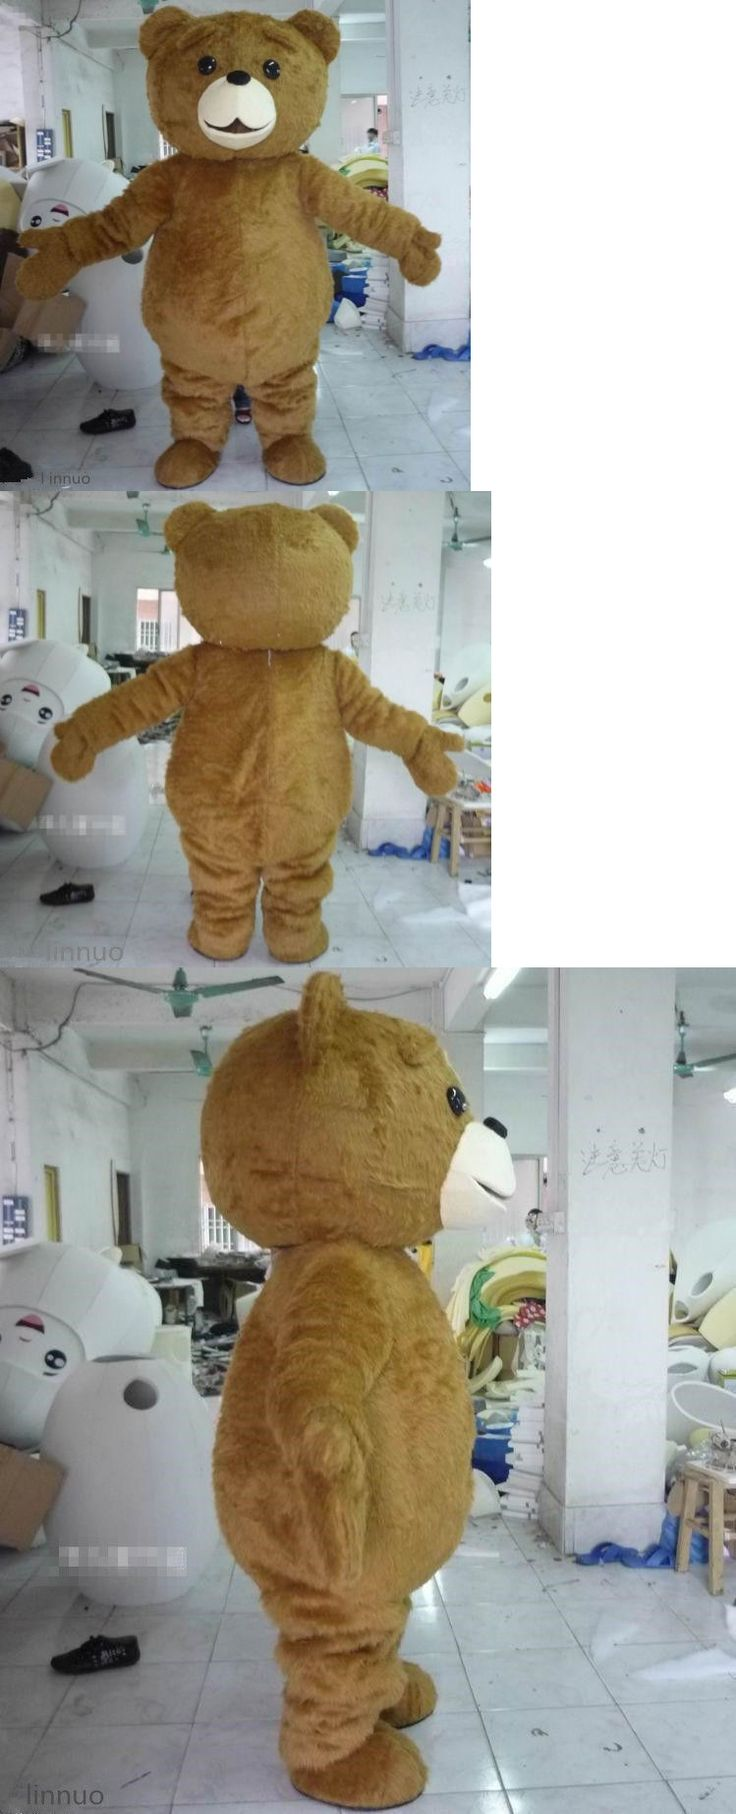 Unisex 86207: Teddy Bear Of Ted Adult Size Halloween Cartoon Mascot Costume Fancy Dress -> BUY IT NOW ONLY: $109.88 on eBay!